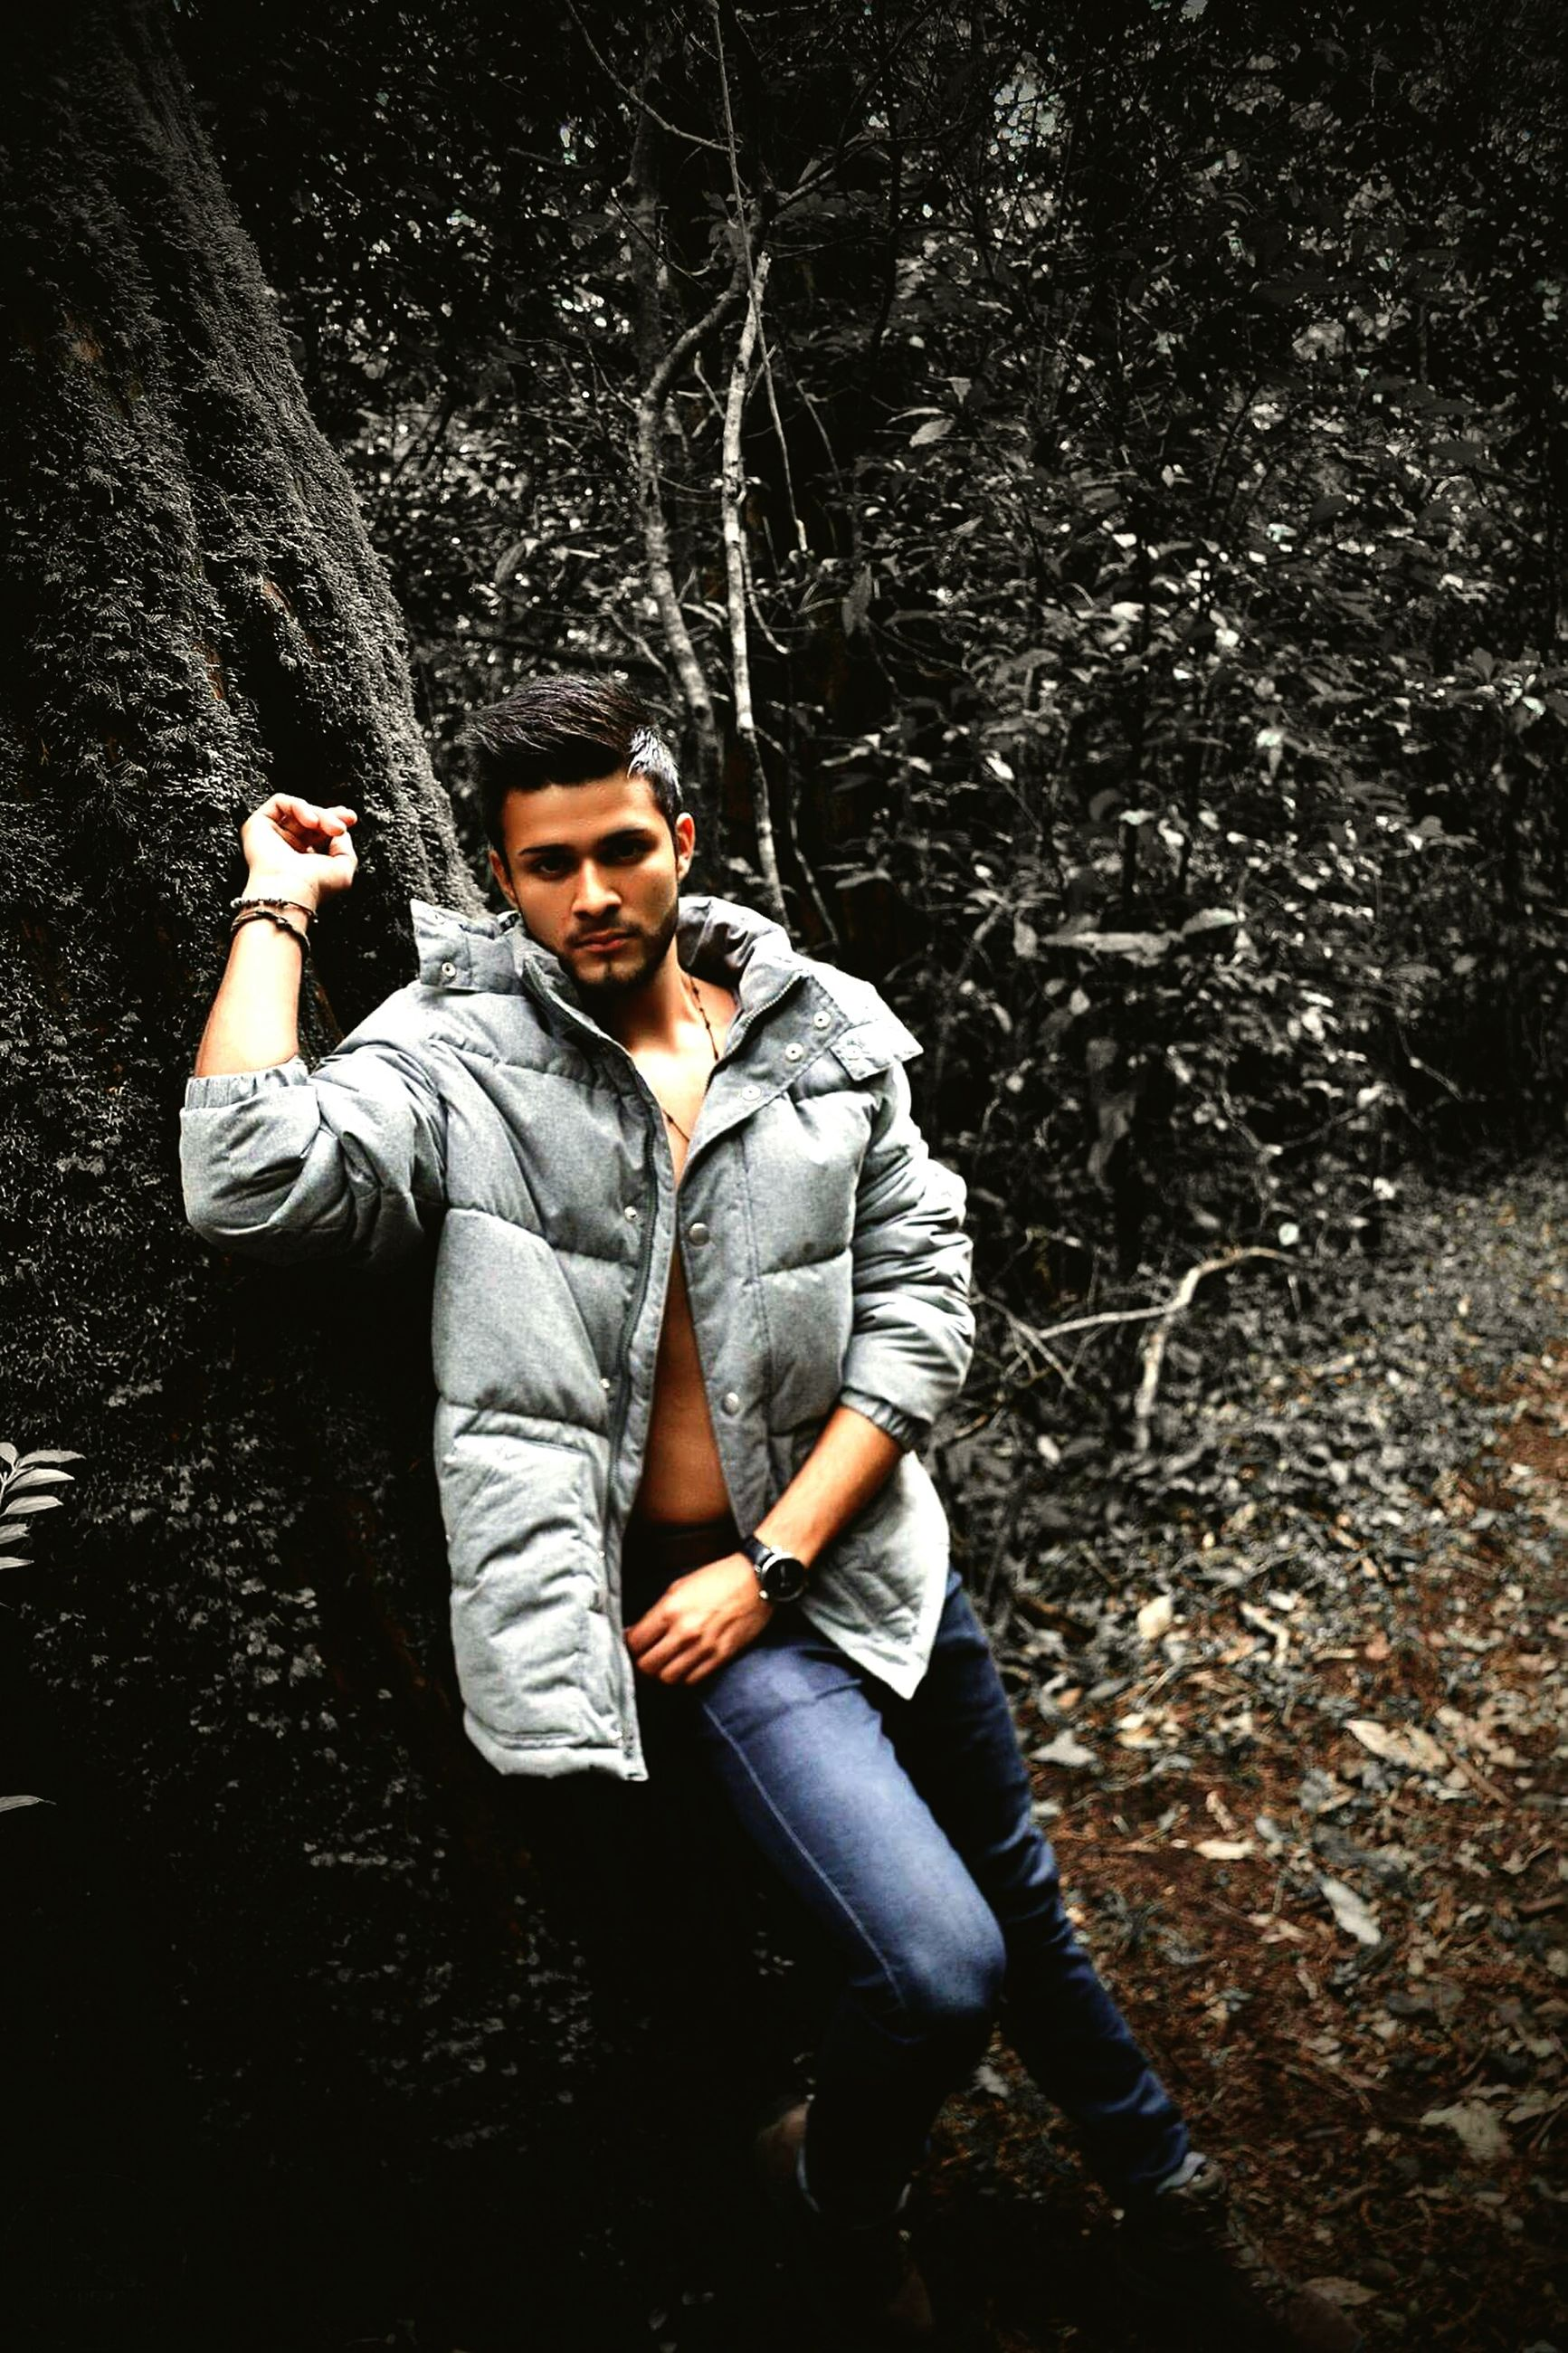 casual clothing, lifestyles, person, young adult, leisure activity, front view, looking at camera, standing, portrait, tree, full length, jacket, young men, forest, three quarter length, holding, smiling